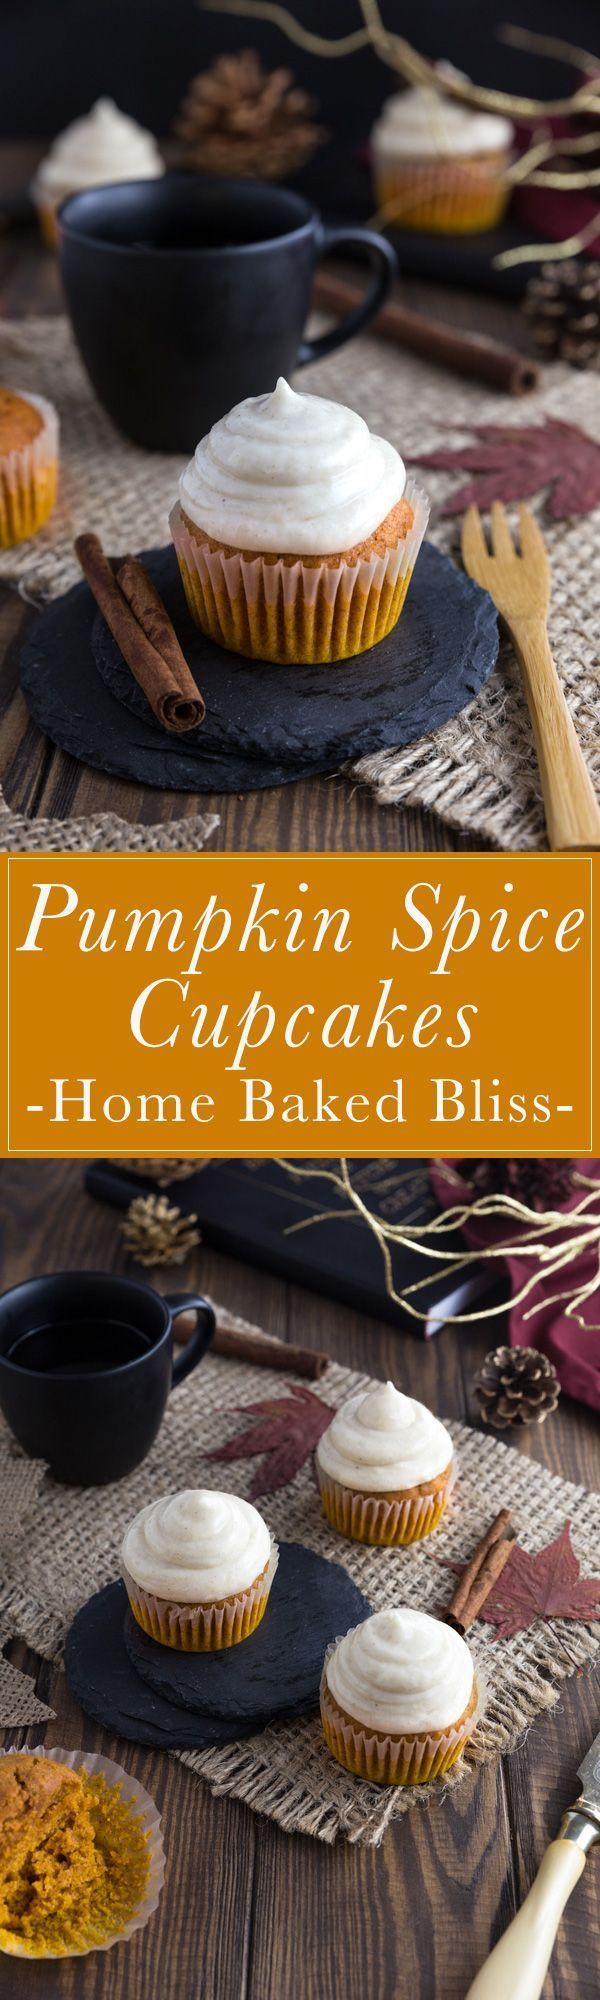 Pumpkin Cupcakes with Cinnamon Frosting #pumpkinspicecupcakes Fluffy and moist pumpkin spice cupcakes with a cinnamon cream cheese frosting. The perfect fall treat! #pumpkincupcakes #pumpkin #cupcakes #pumpkinspice #dessert #falldessert | homebakedbliss.com #pumpkinspicecupcakes Pumpkin Cupcakes with Cinnamon Frosting #pumpkinspicecupcakes Fluffy and moist pumpkin spice cupcakes with a cinnamon cream cheese frosting. The perfect fall treat! #pumpkincupcakes #pumpkin #cupcakes #pumpkinspice #dess #pumpkinspicecupcakes